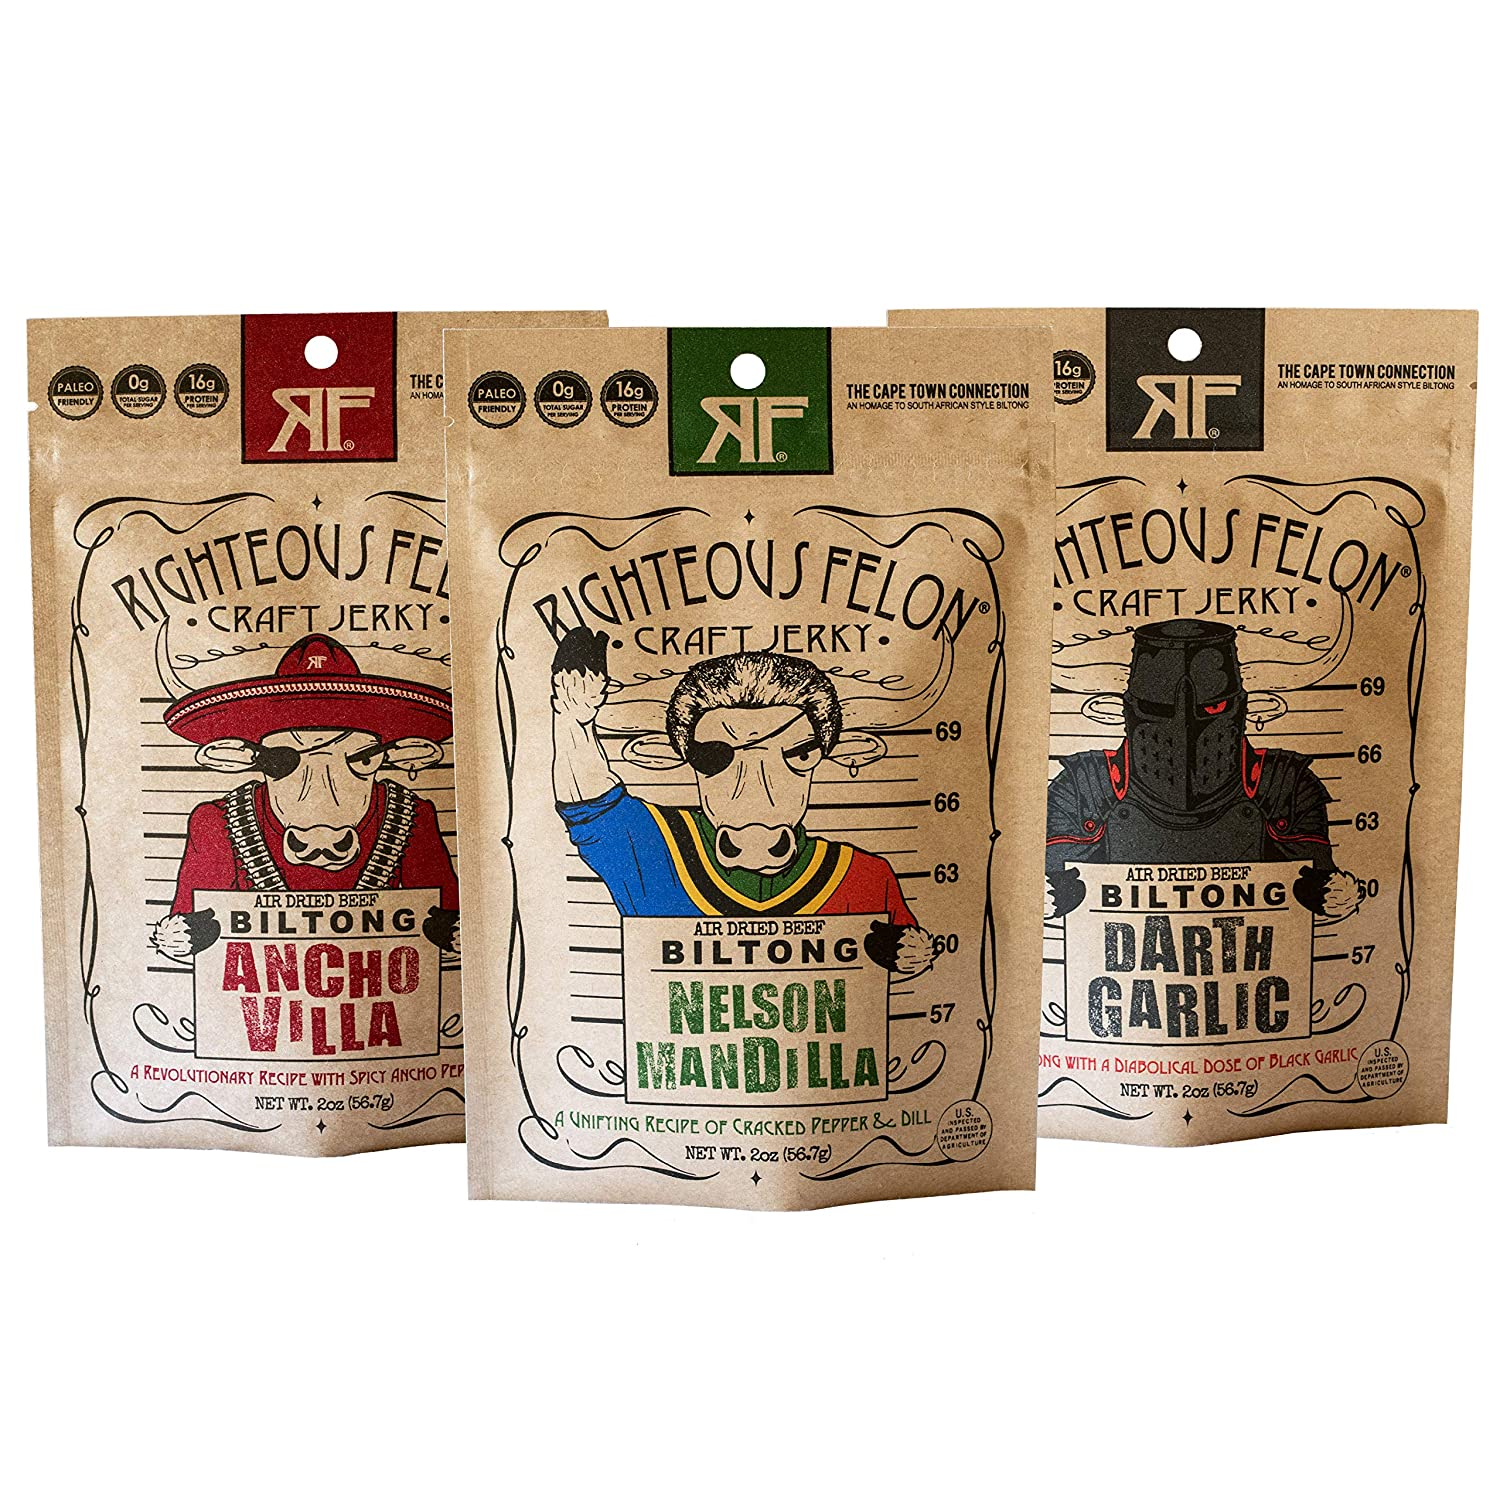 Righteous Felon Biltong Beef Jerky | Keto, Paleo, Gluten Free, High Protein | Hormone Free All Natural South African Style Biltong, No Artificial Flavors, Low Carb Snack | 3 Count (2oz bags)